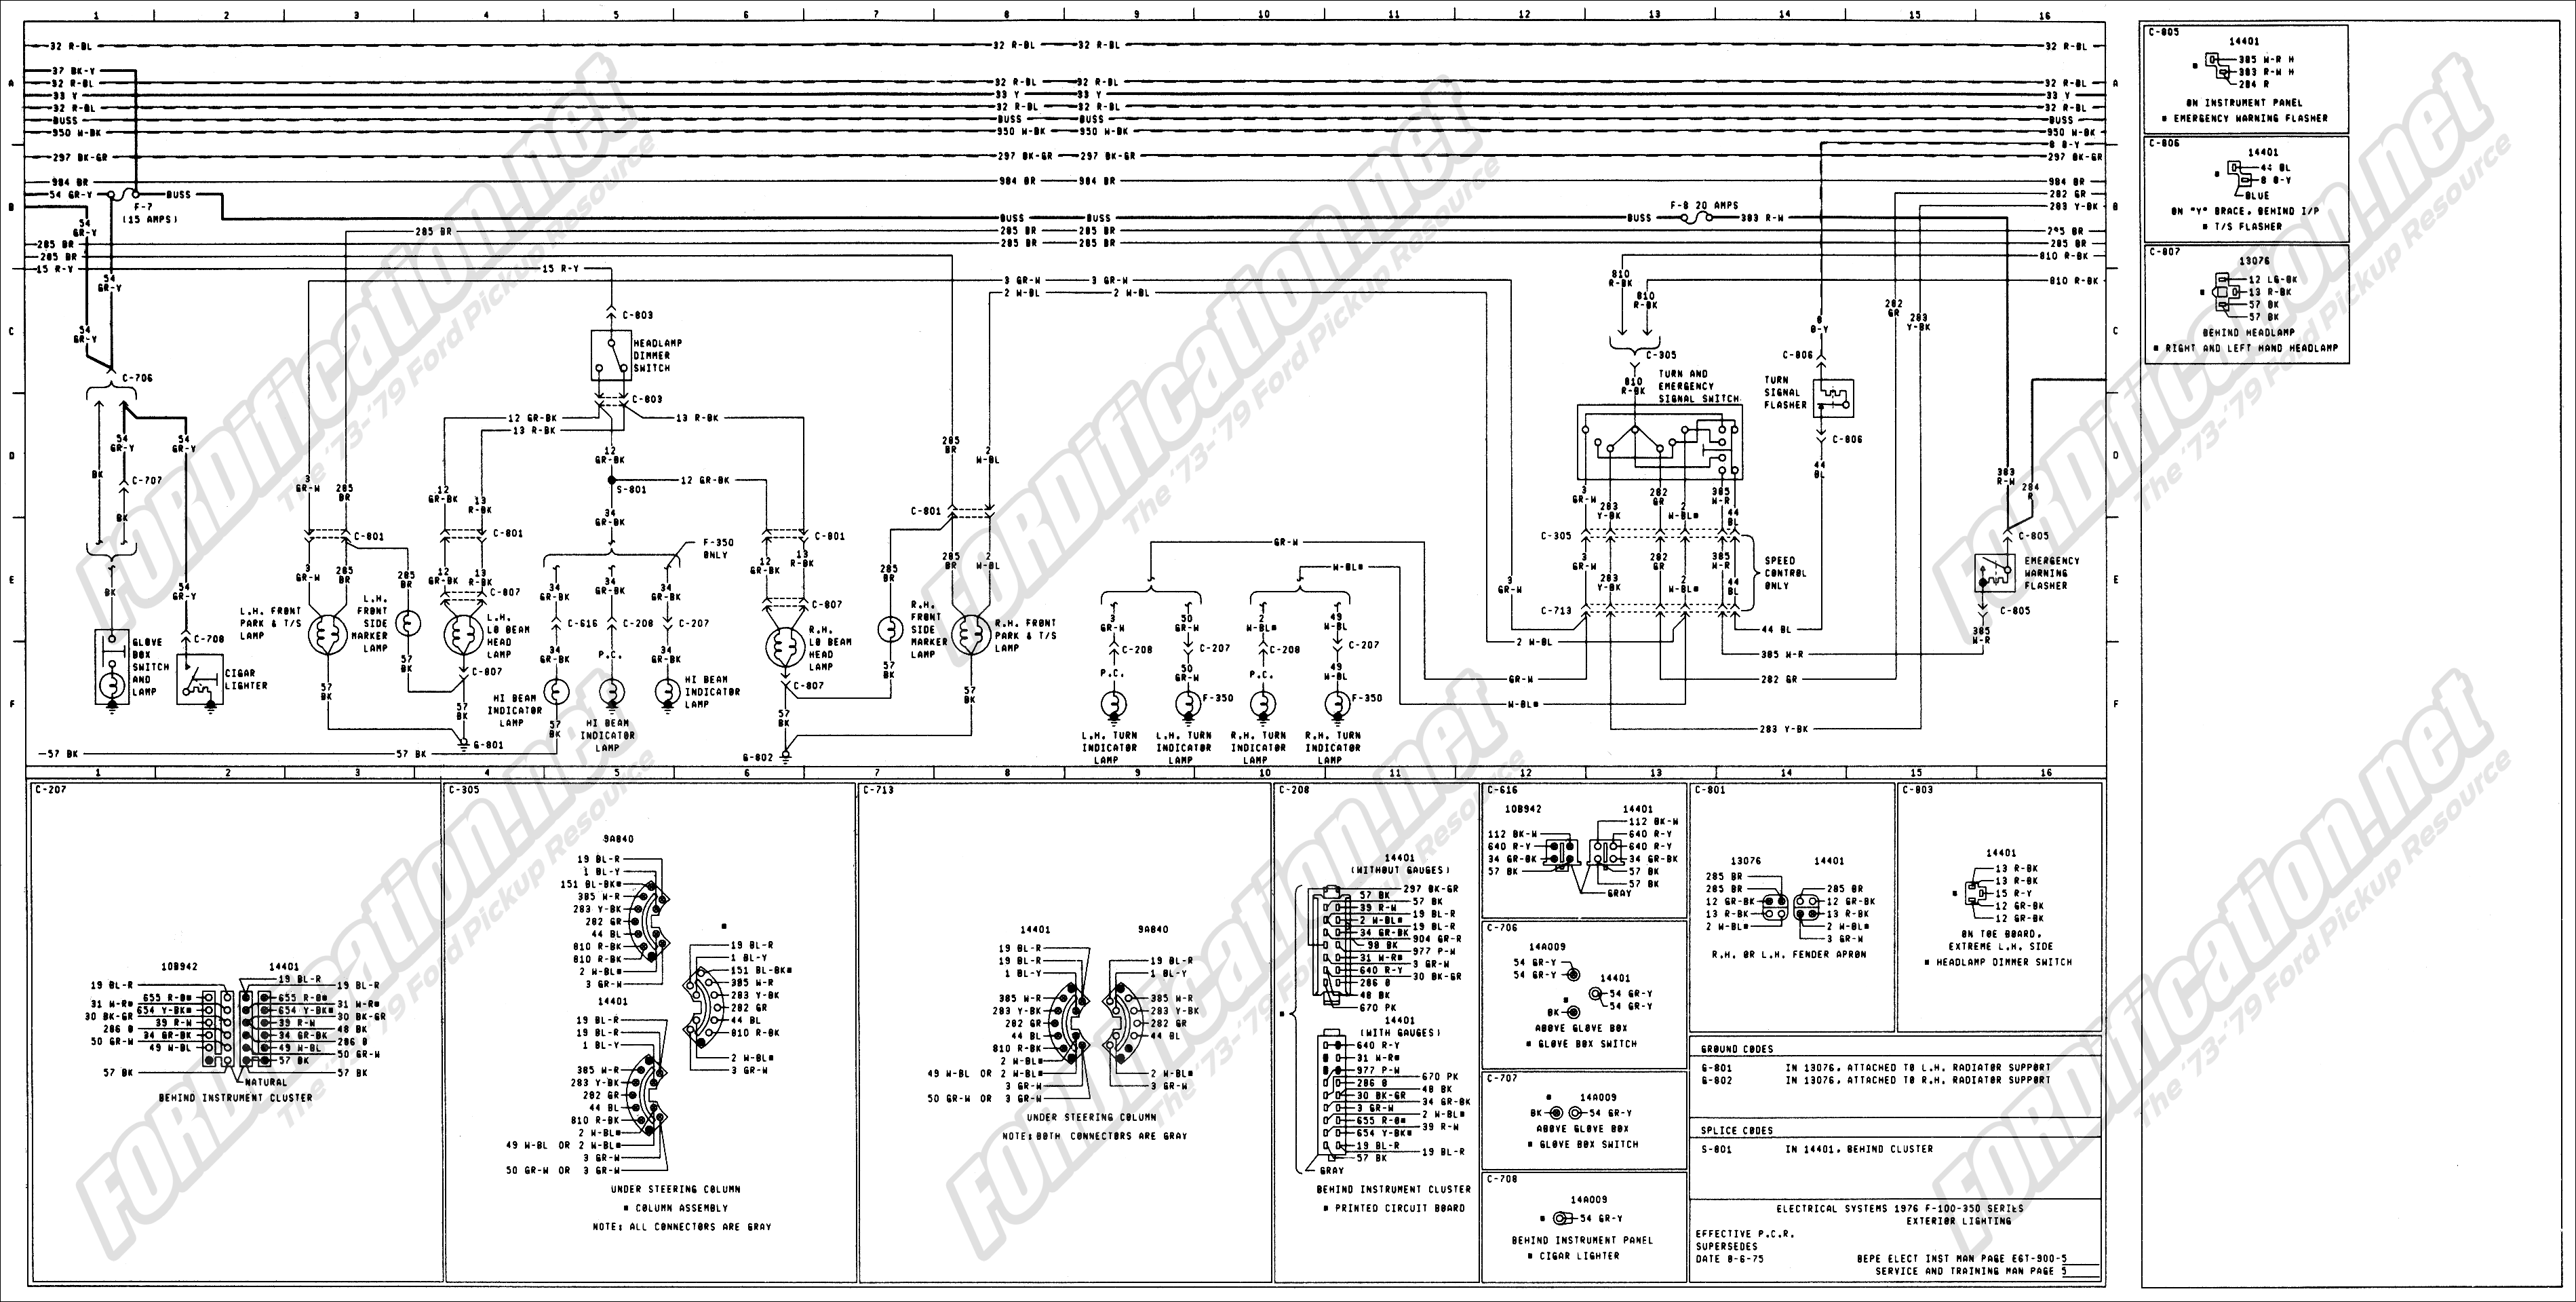 1983 Ford Headlight Wiring Diagram Will Be A Thing 1994 Lincoln Town Car Ignition 1973 1979 Truck Diagrams Schematics 2010 Gmc Sierra Explorer Switch